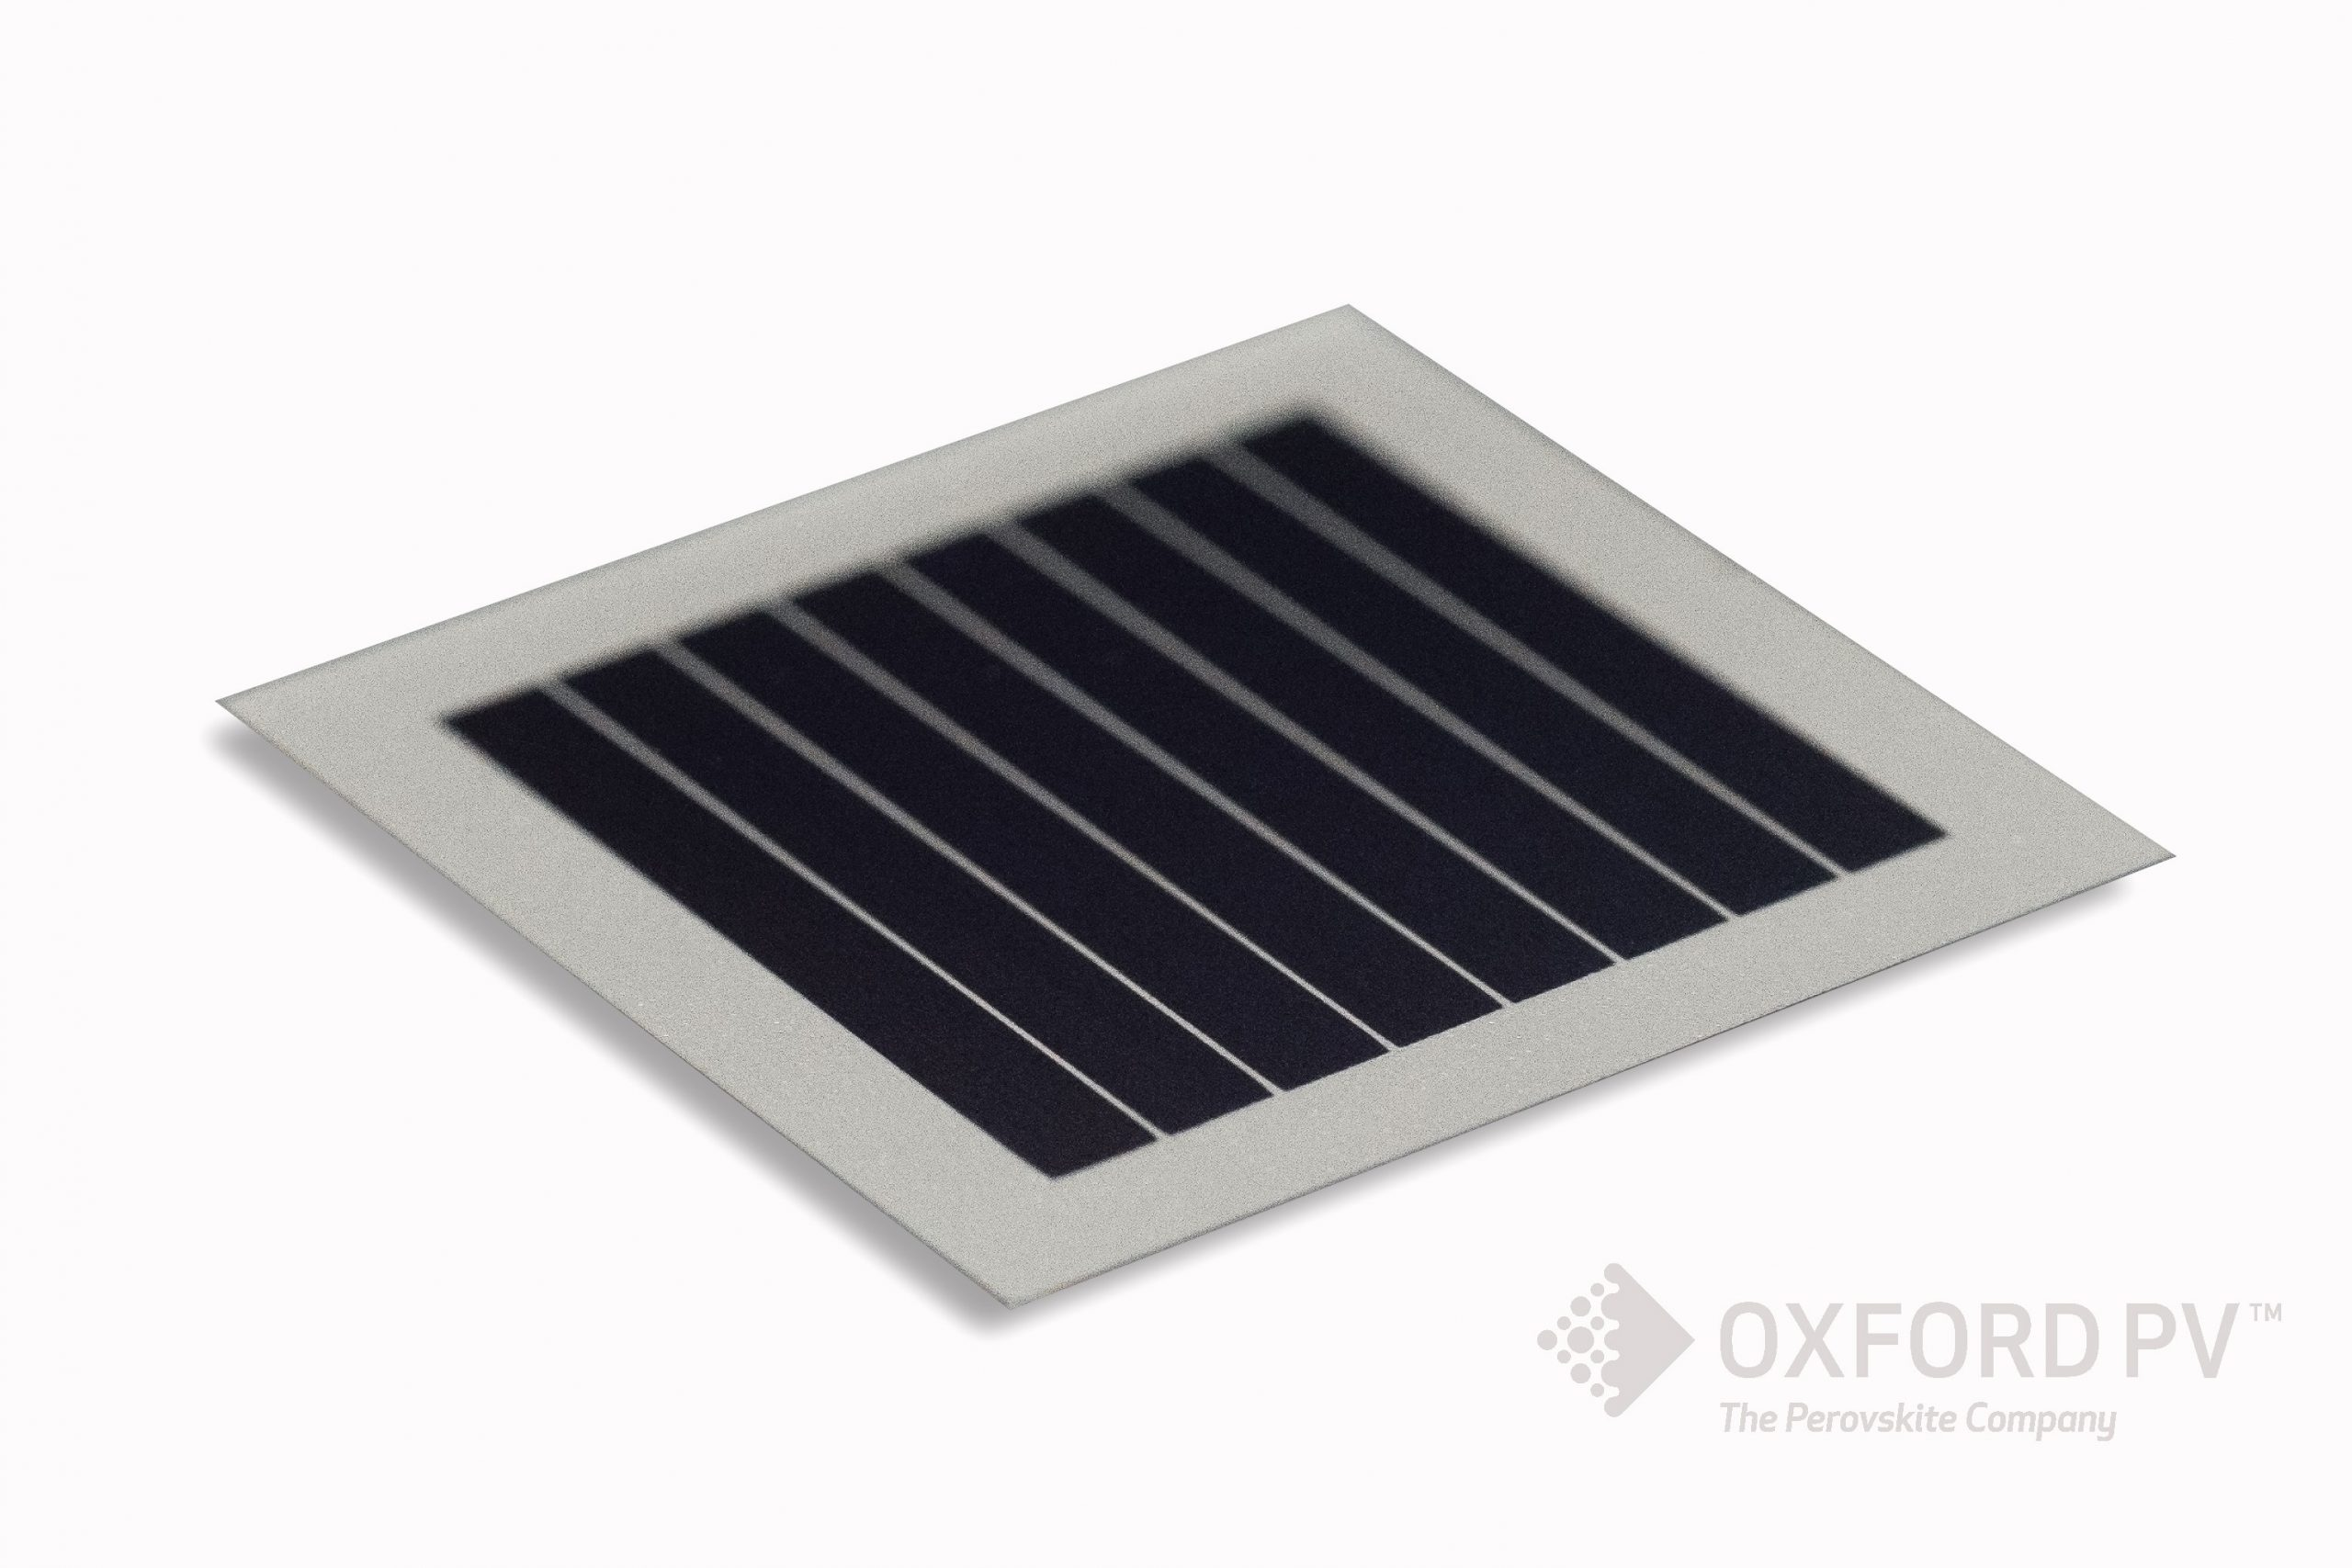 Oxford PV perovksite-silicon tandem cell_0